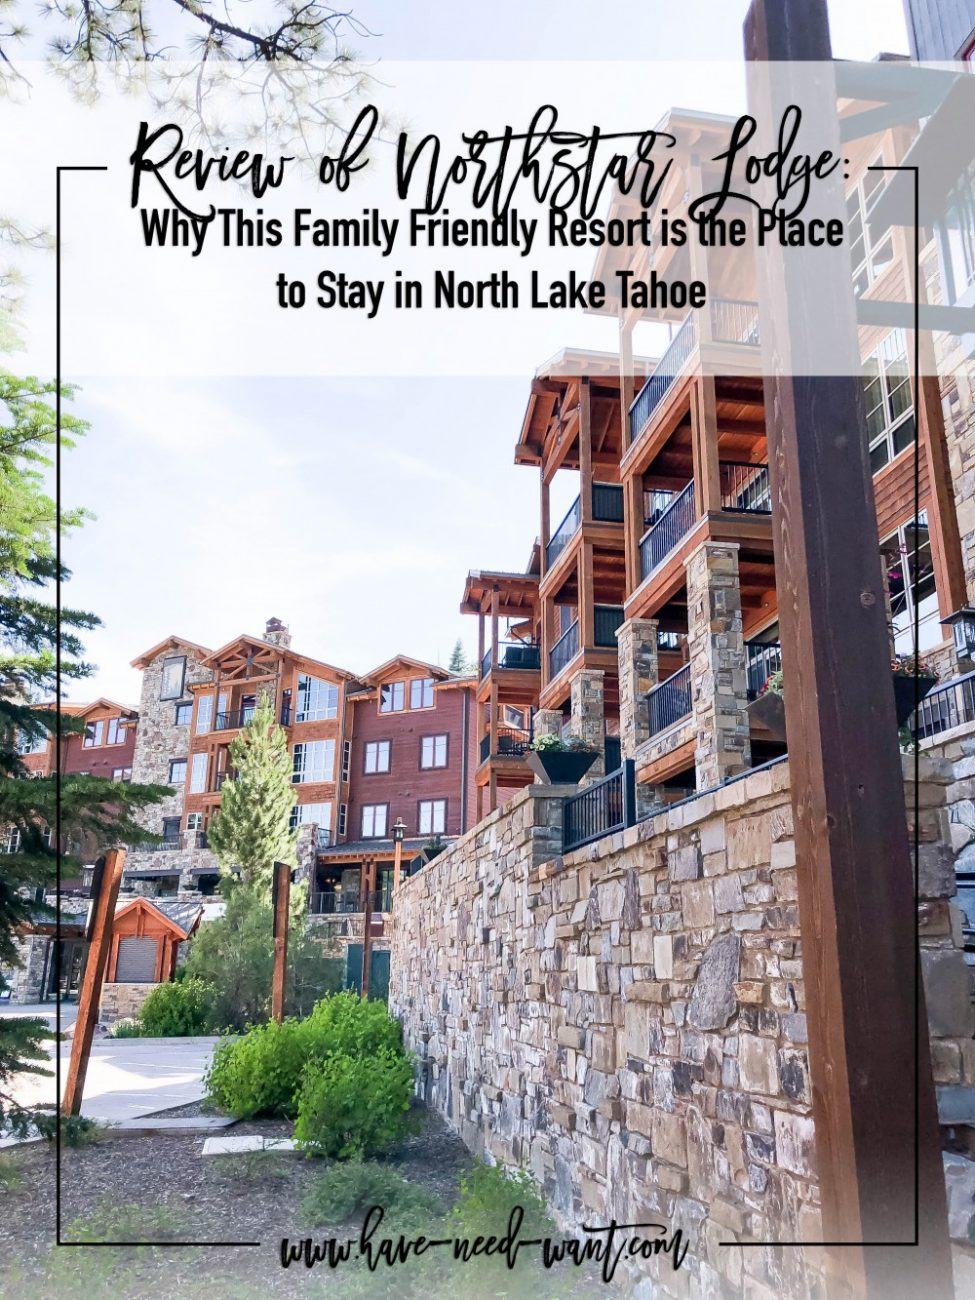 Review of Northstar Lodge and sharing why it's the perfect family friendly getaway when you're visiting North Lake Tahoe! Head over to the post to check out my review. #hotelreview #northstar #northstarlodge #northlaketahoe #familyvacation #familytravel #familyfriendlyresort